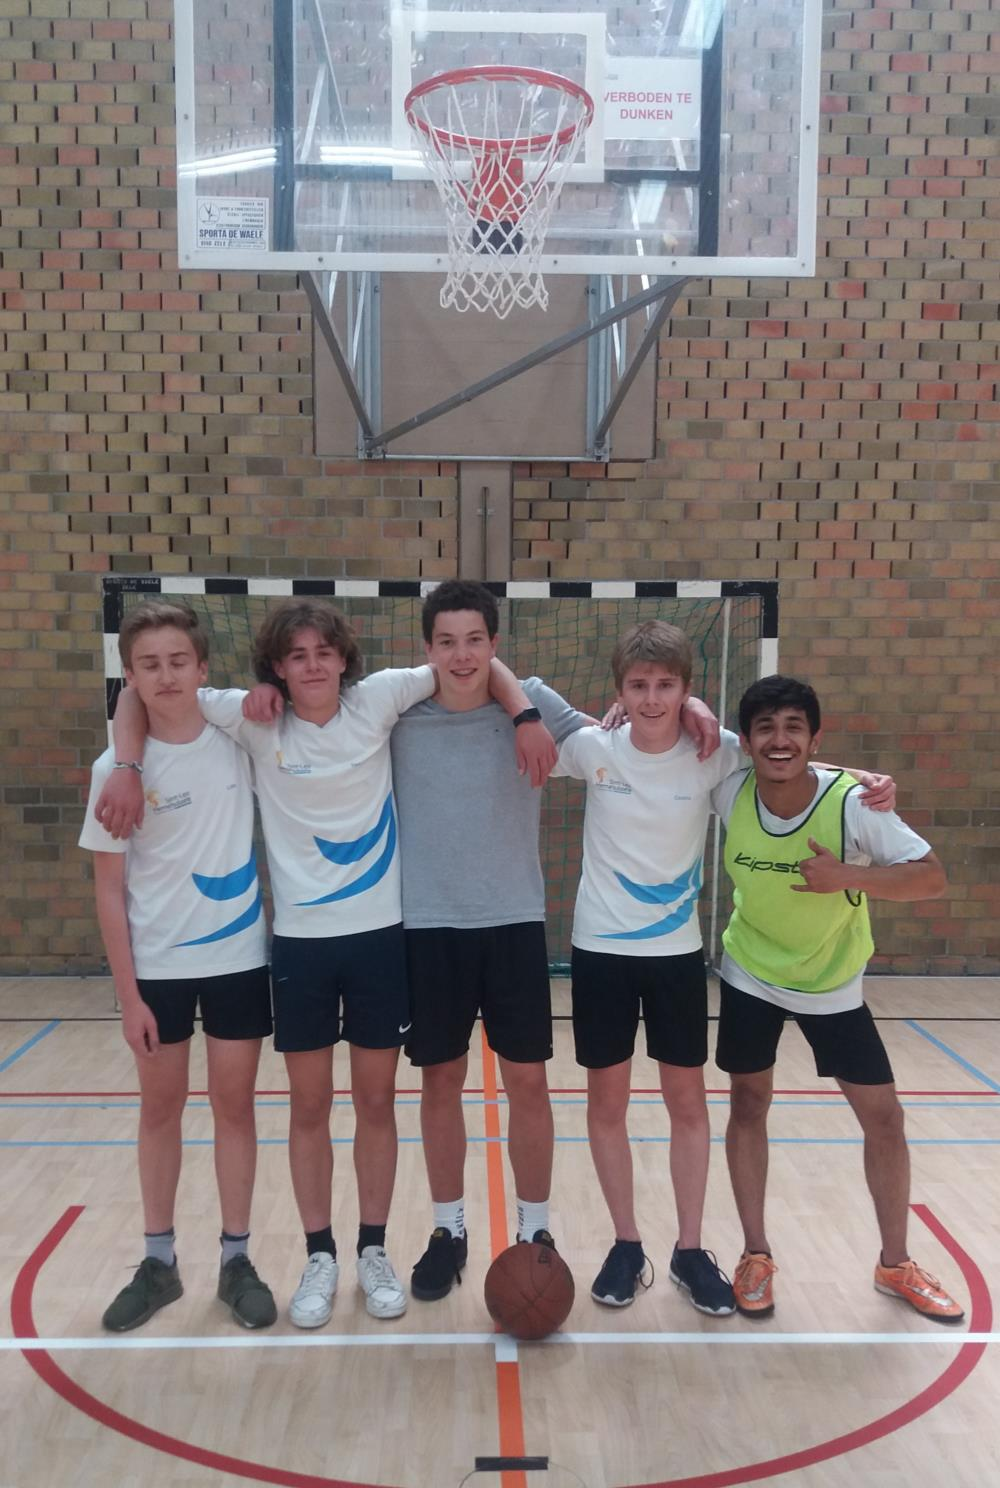 Klassencompetitie basketbal